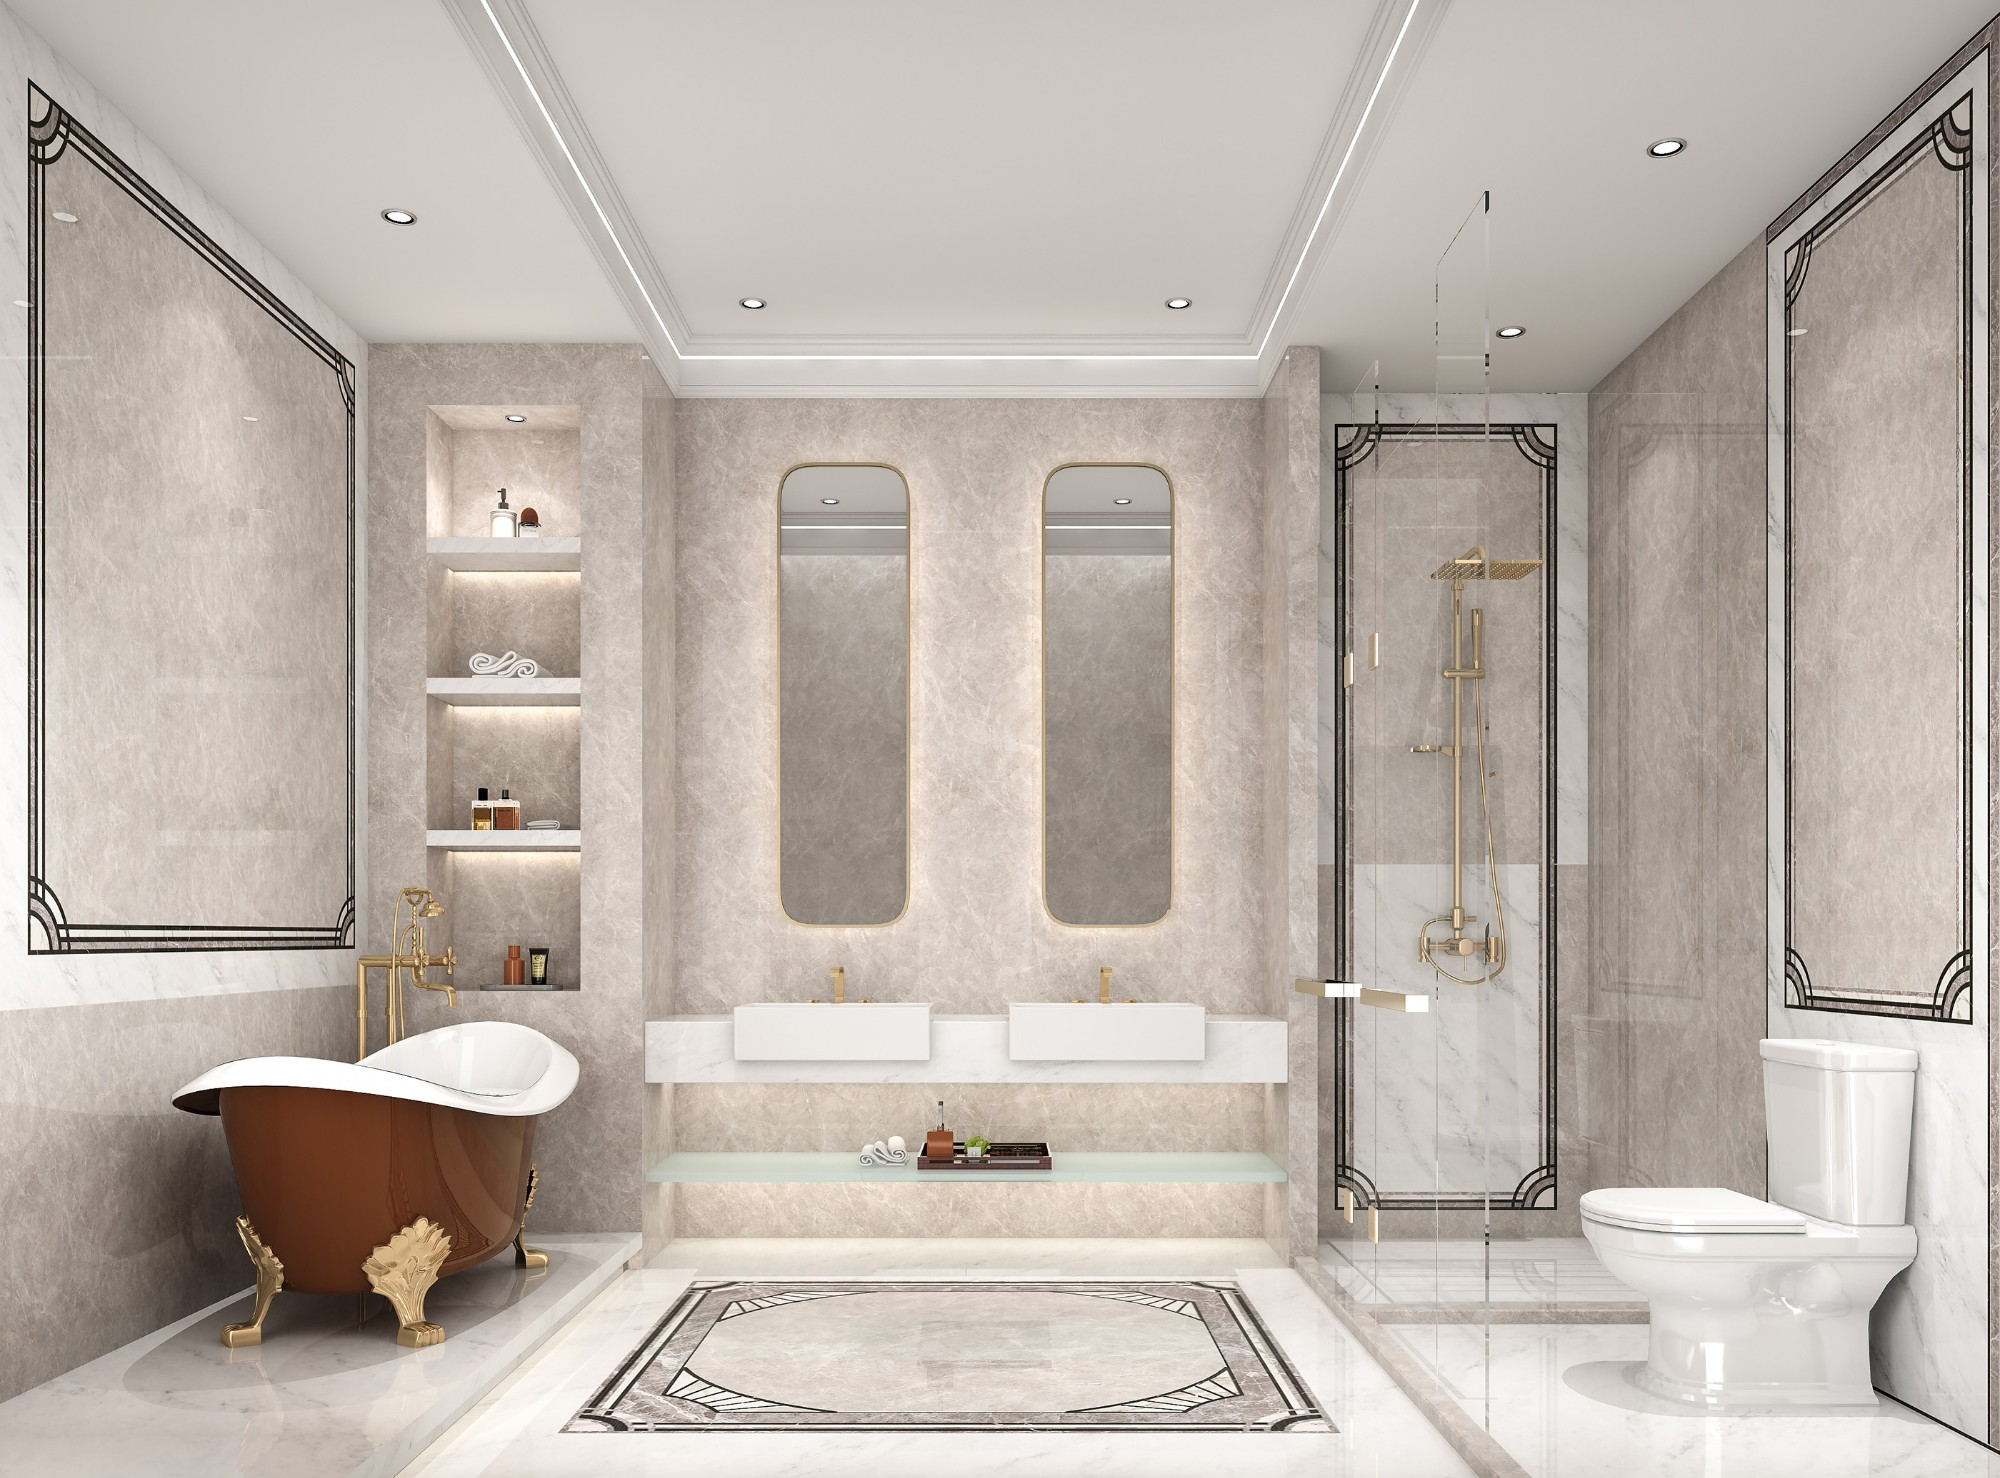 Nuvola Marrone Marble Tiles Manufacturers, Nuvola Marrone Marble Tiles Factory, Supply Nuvola Marrone Marble Tiles